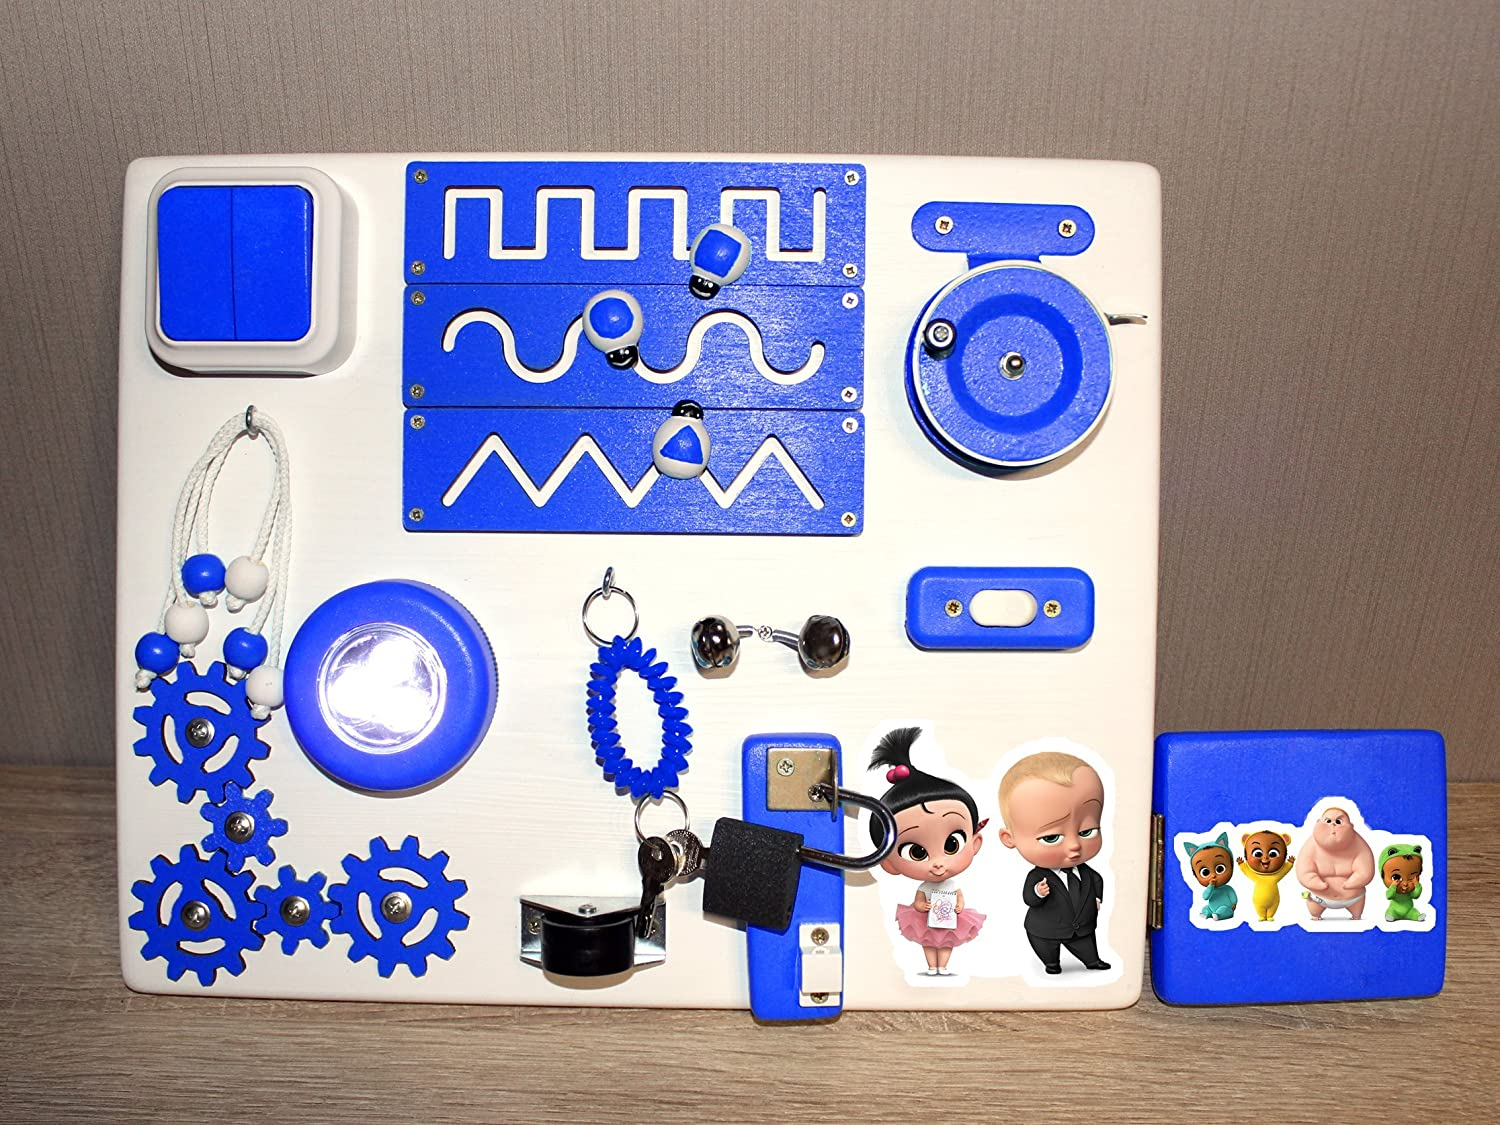 The Boss Baby Travel Busy Board - Educational Activity Toy For Toddlers - Montessori Sensory Game For Boys And Girls - Wooden Kids Toy - Locks And Latches Game - Children Fine Motor Skills Development